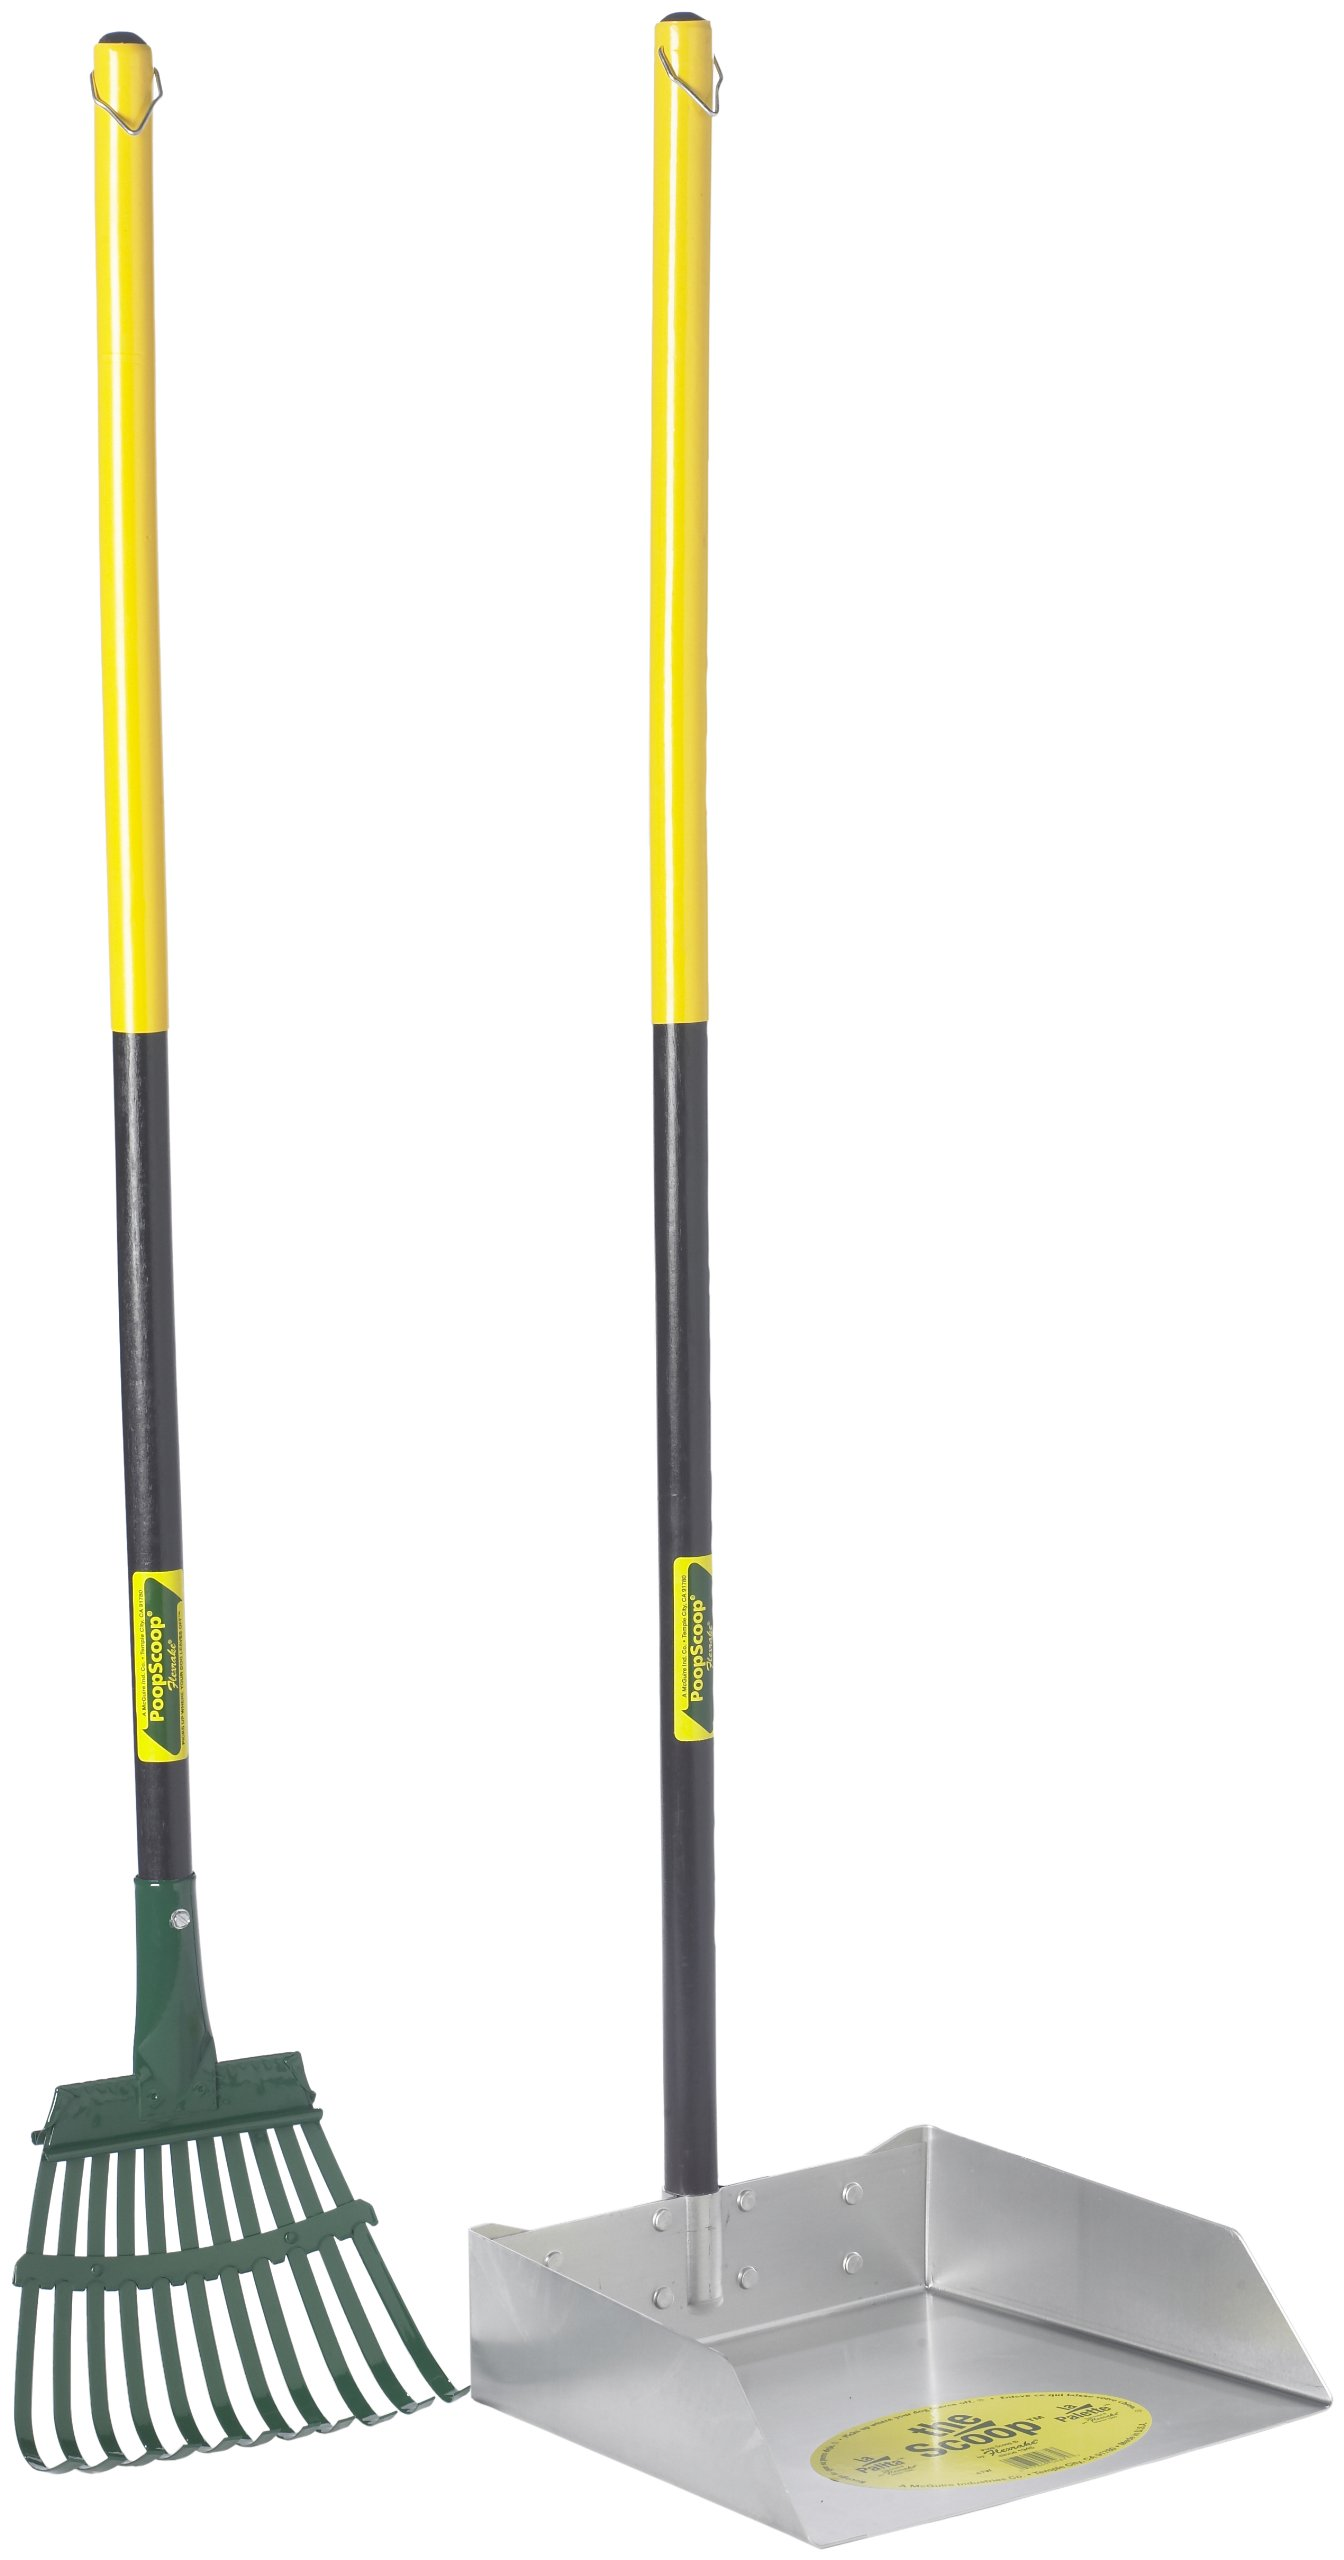 Flexrake 68W Large Scoop and Steel Rake Set with 36-Inch Cherry Stained Wood Handle